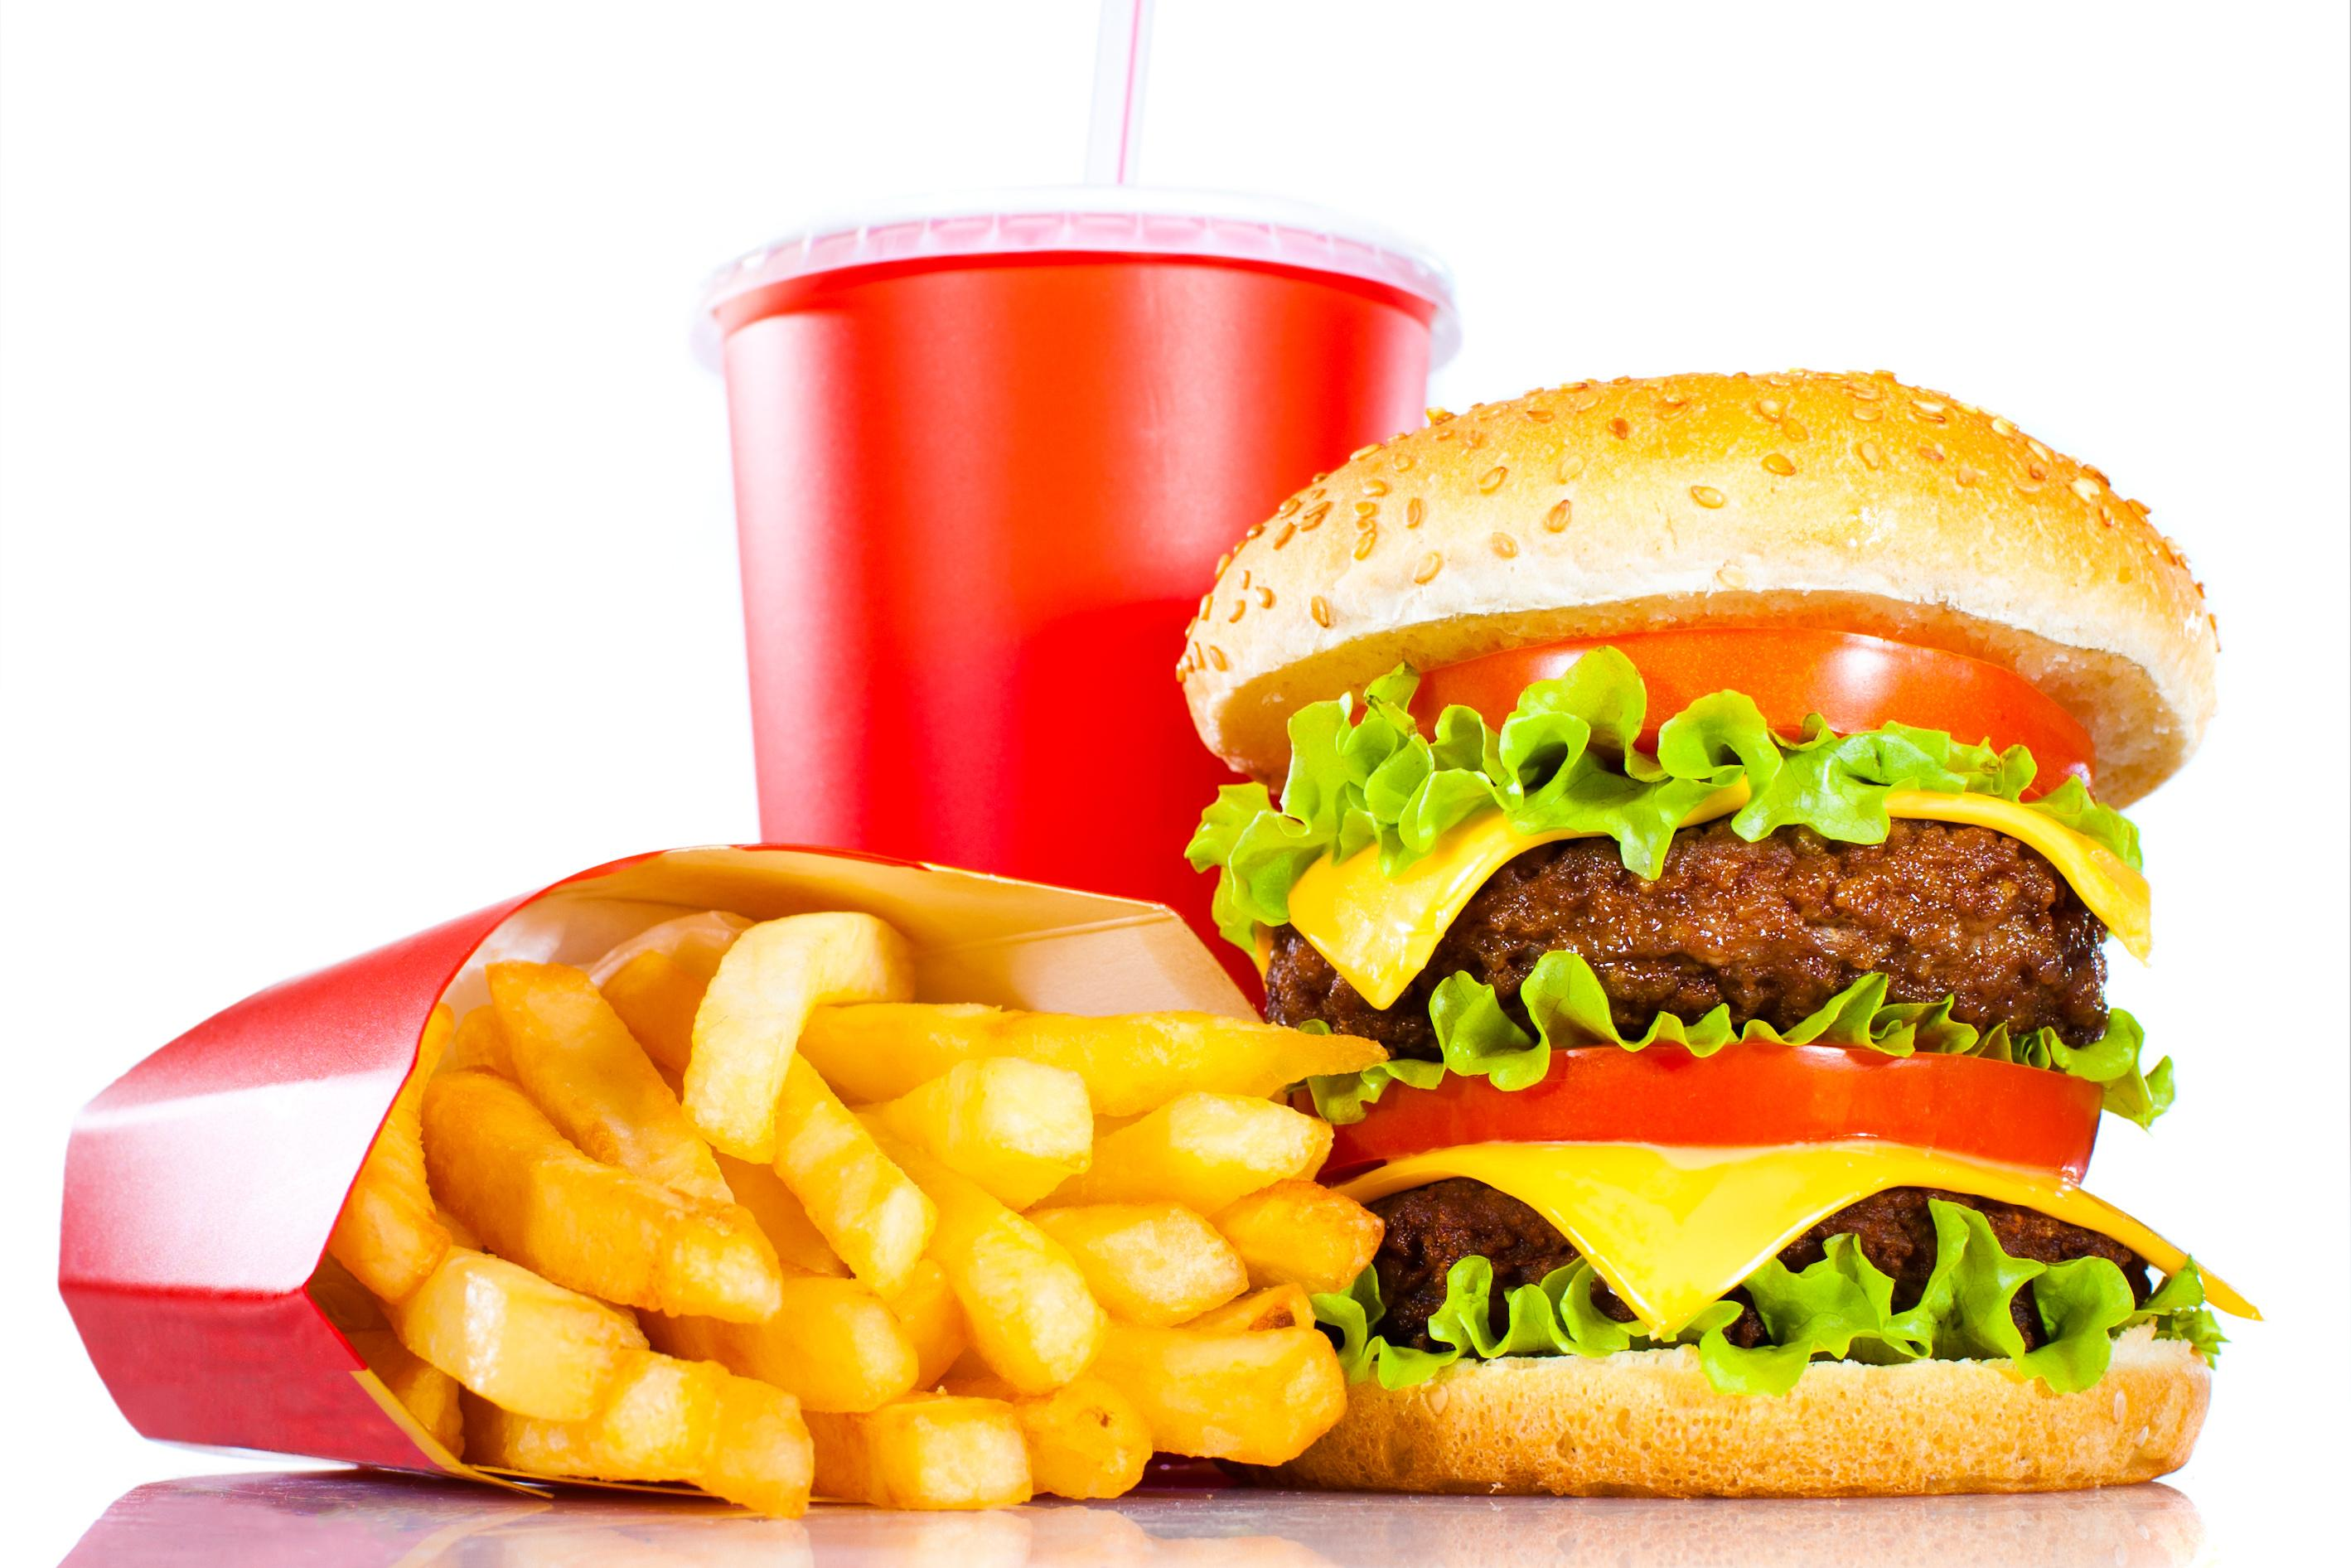 What Diseases Can Fast Food Cause